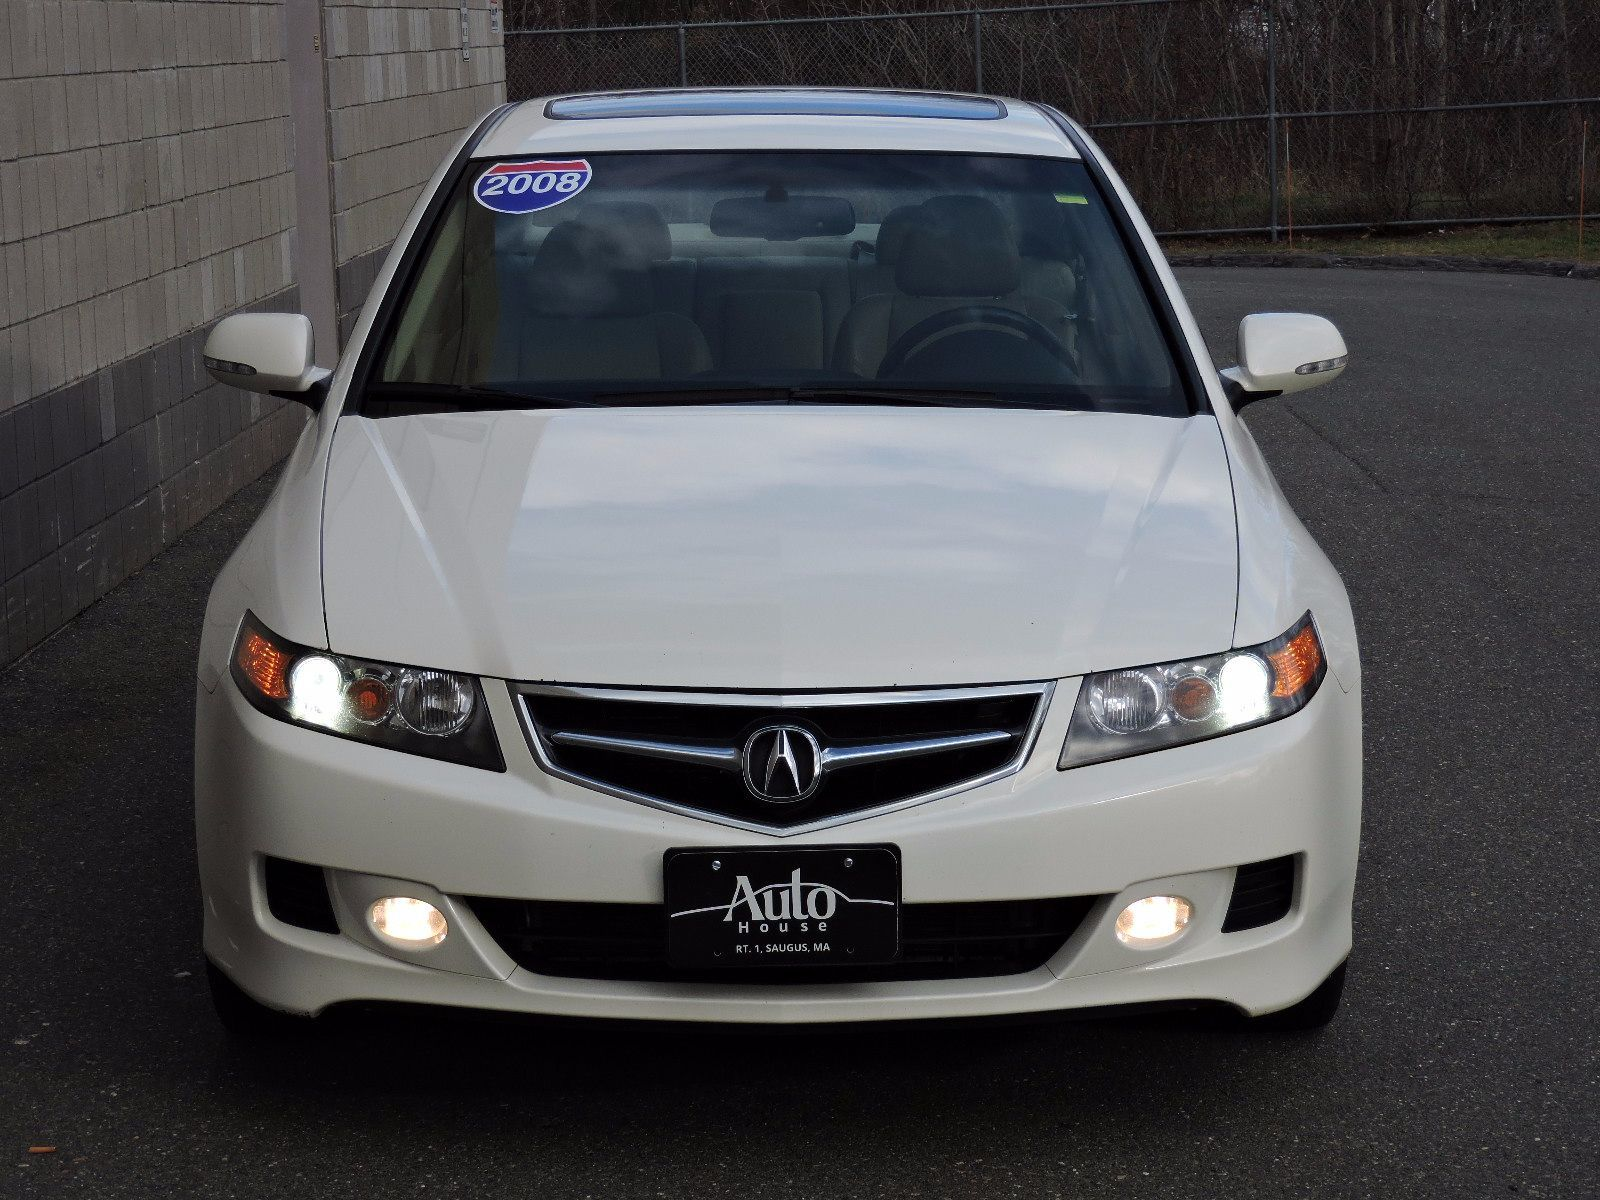 Acura TSX for Sale Nationwide - Autotrader